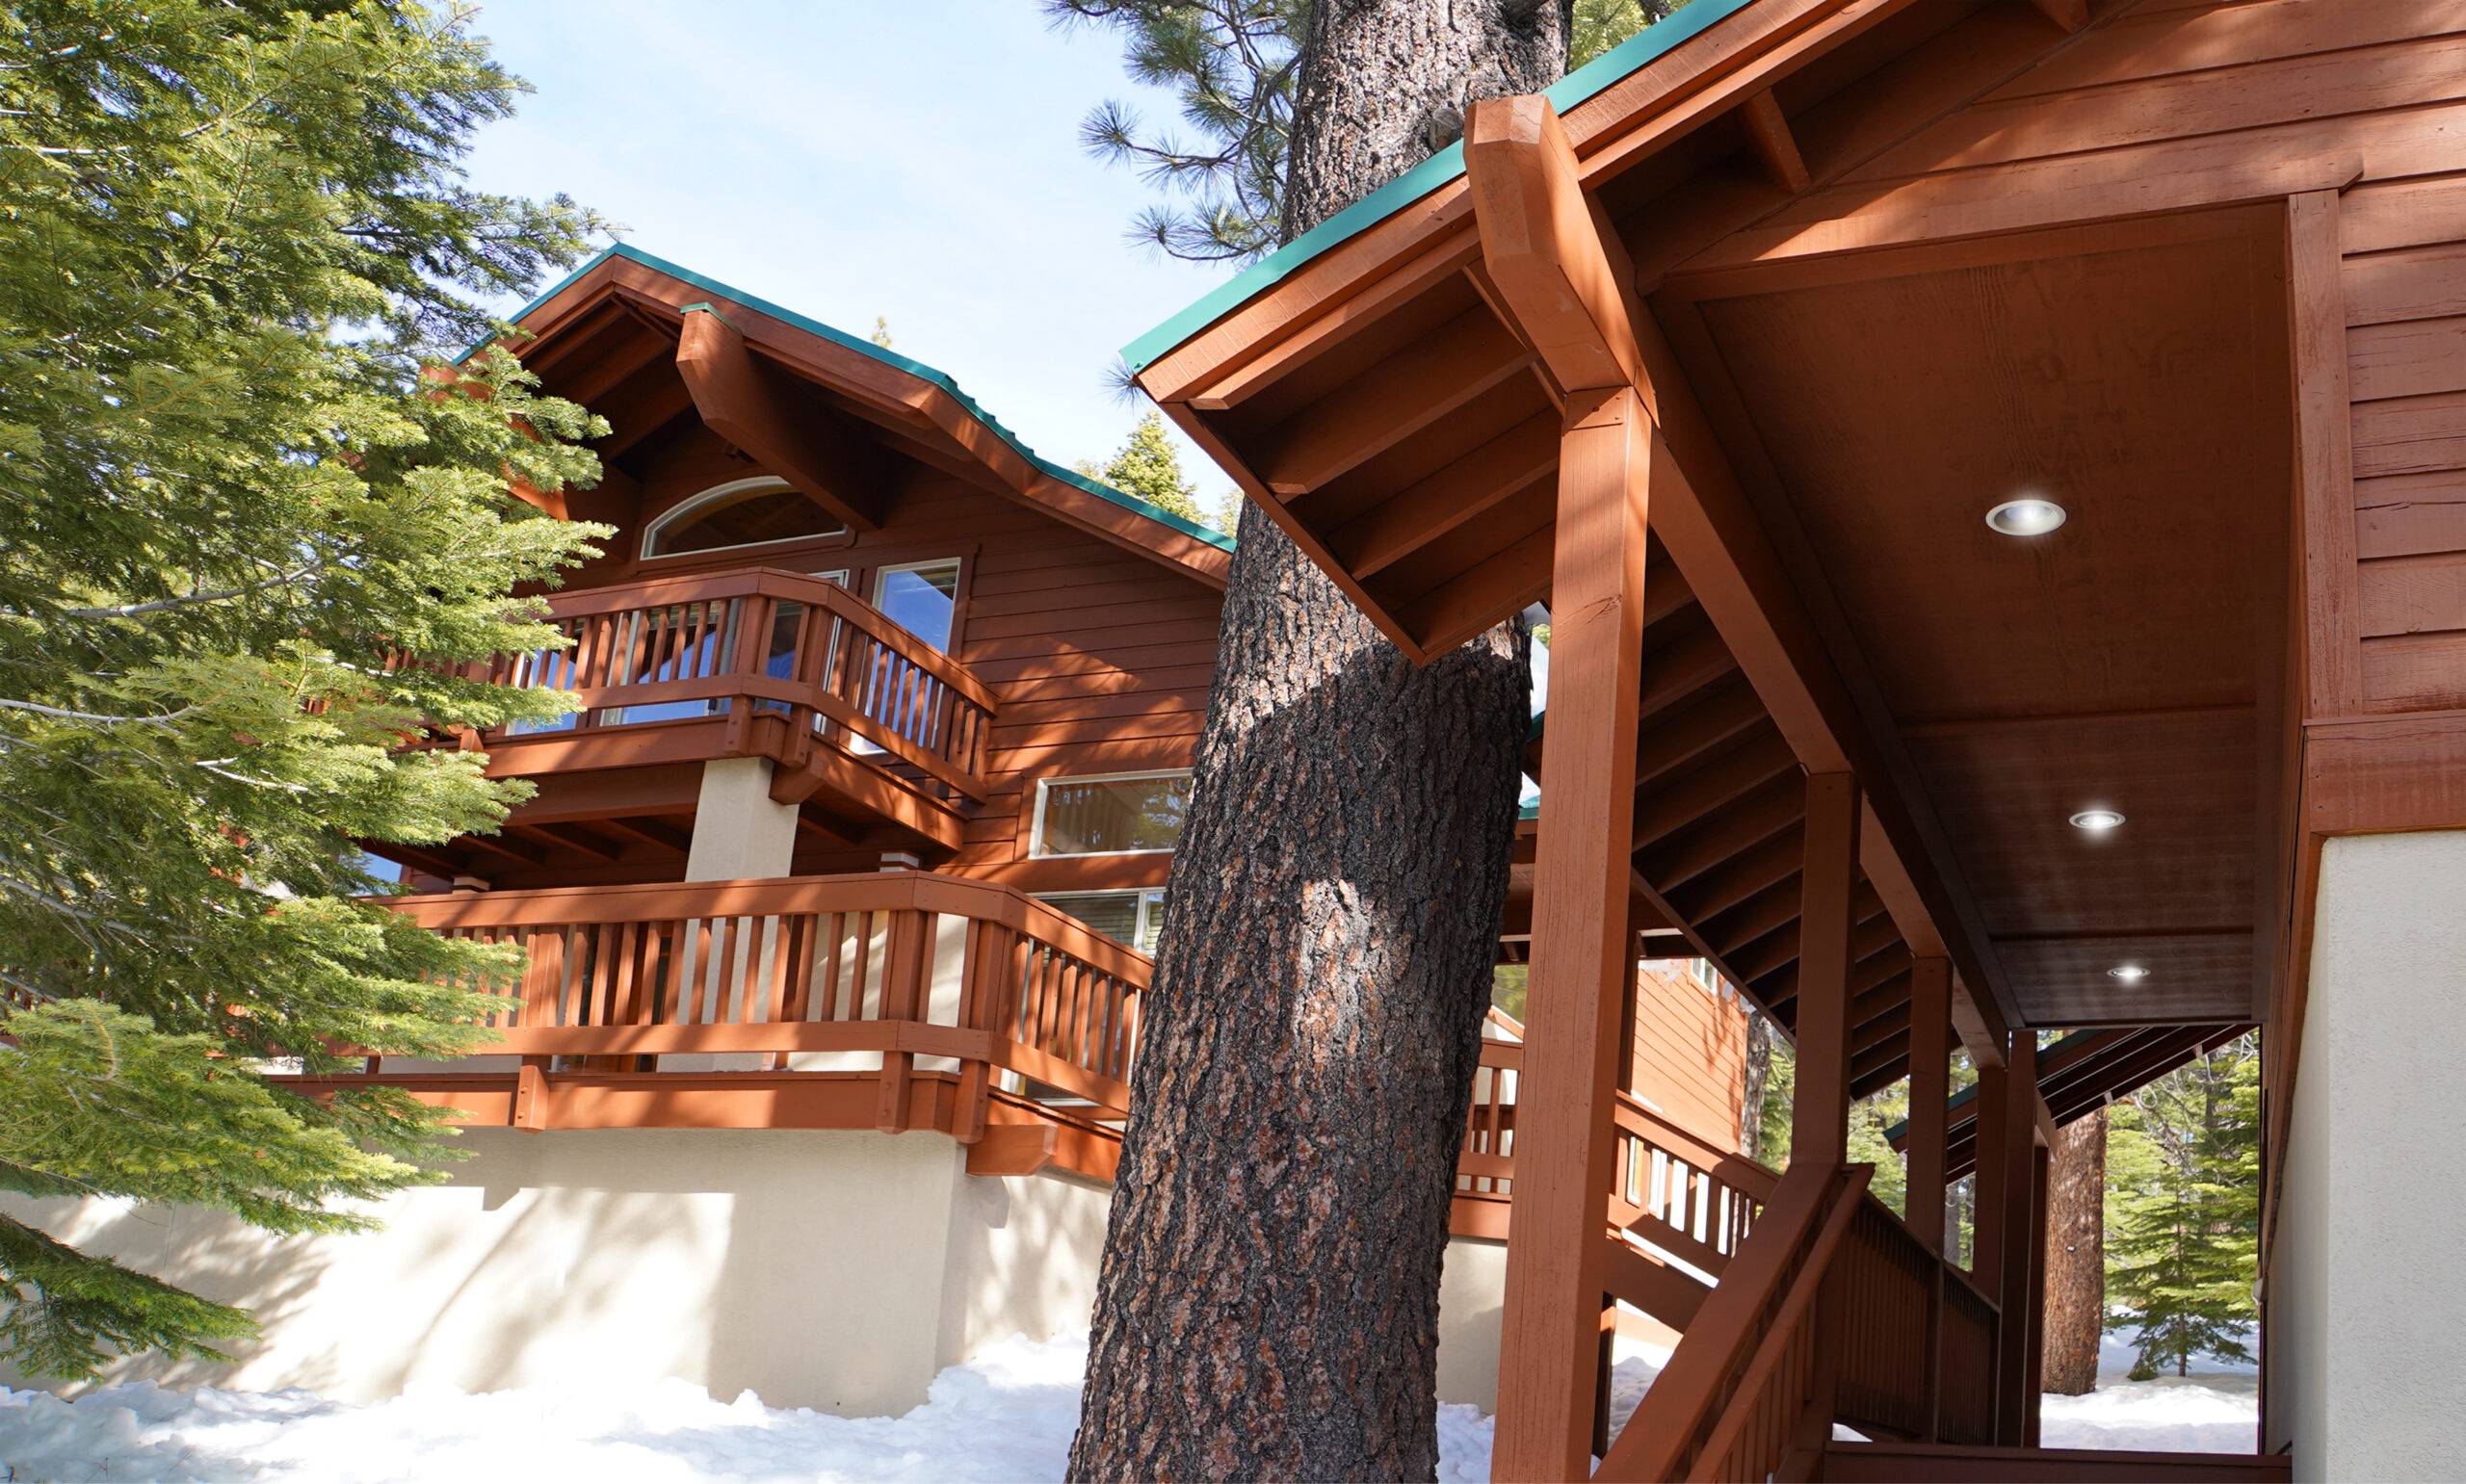 Street view of a home for sale in Truckee, CA